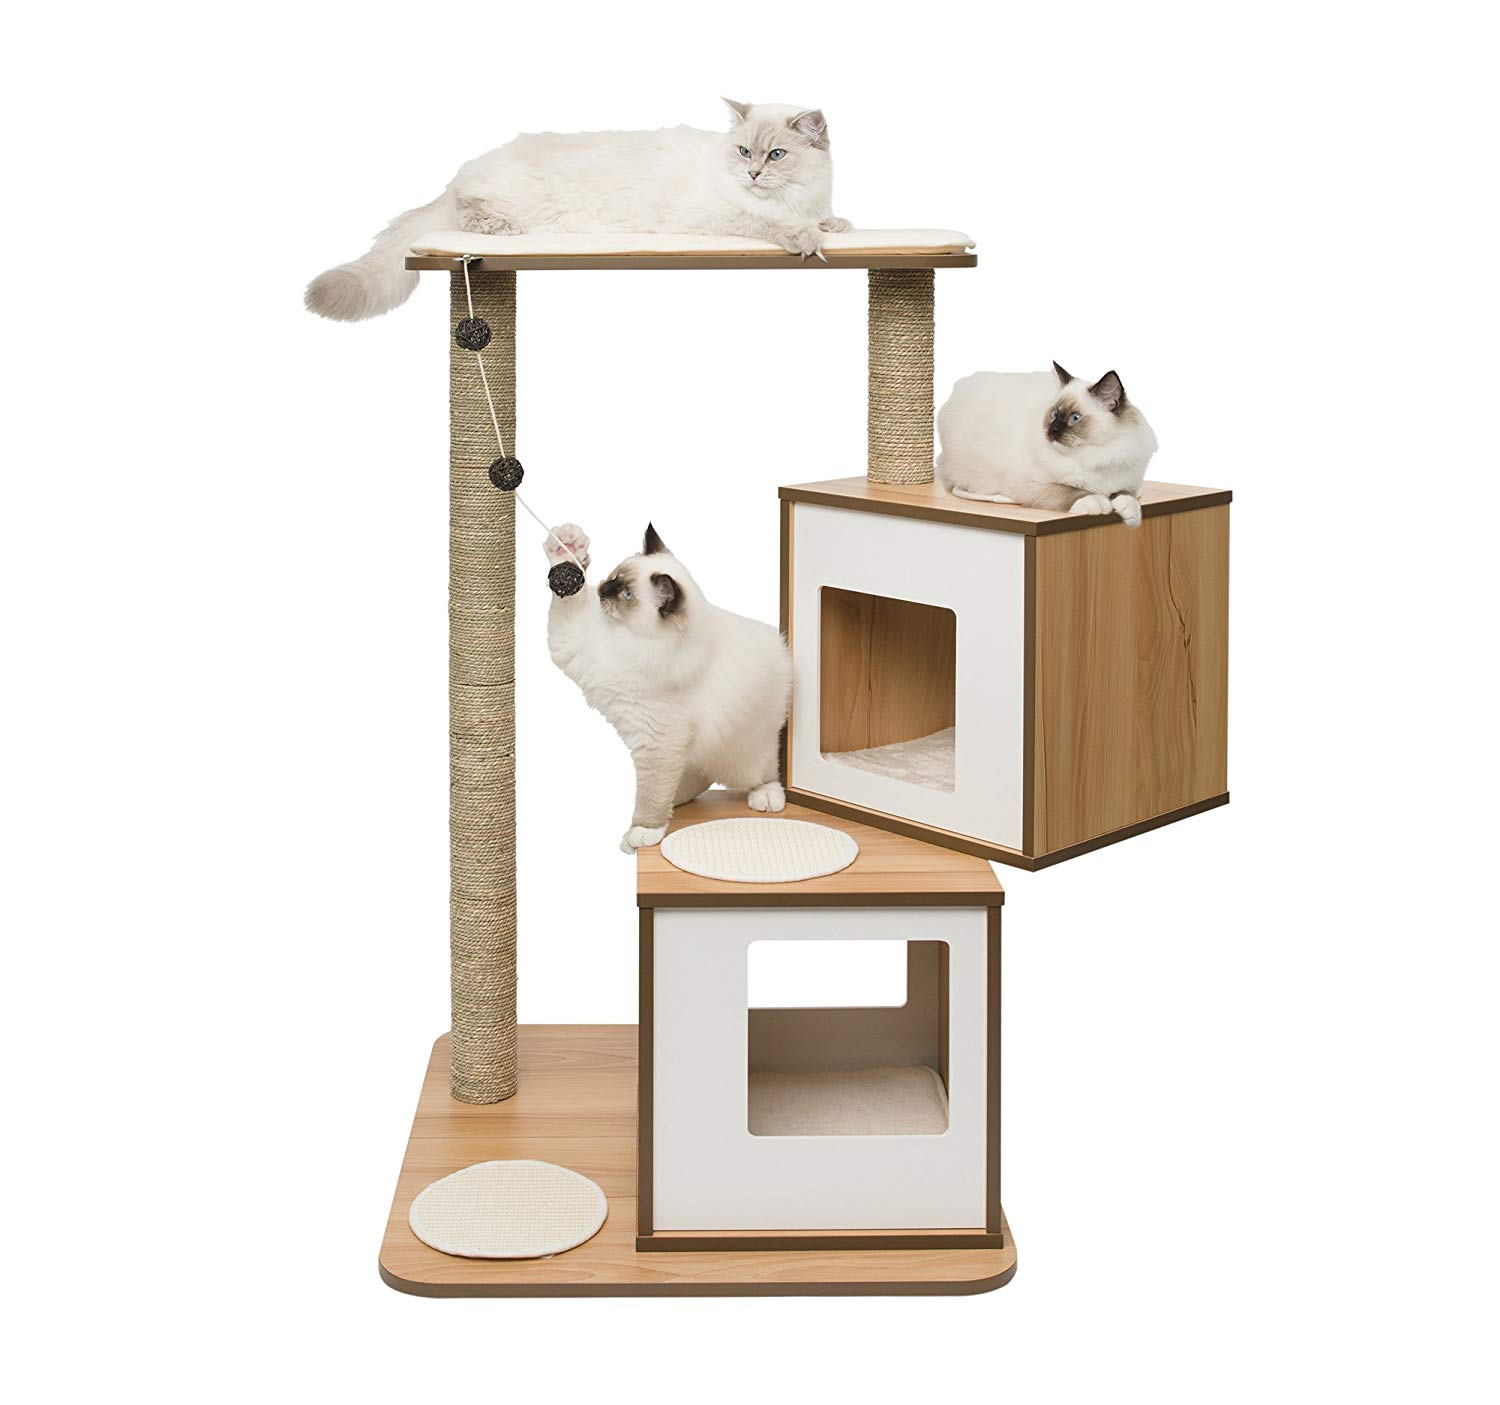 Vesper Cat Furniture for large cats www.puppyurl.com